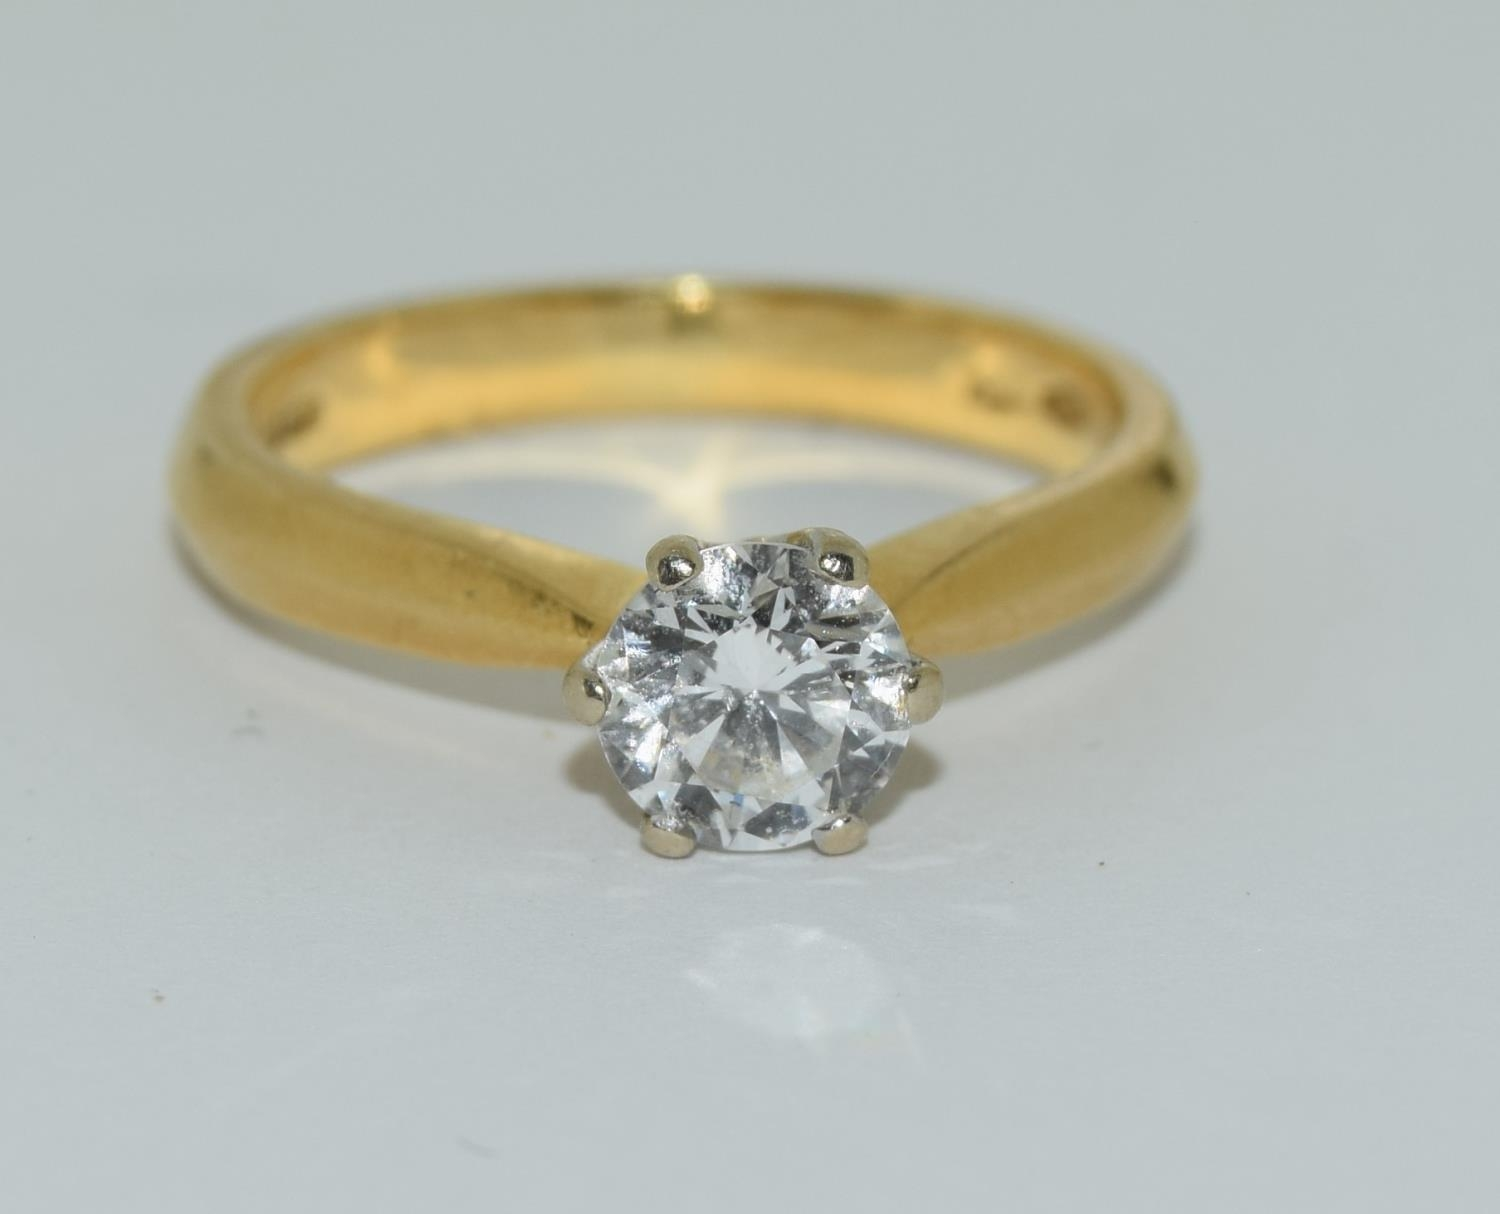 An 18ct white gold ladies diamond solitaire ring 0.75ct Approx., Size M.